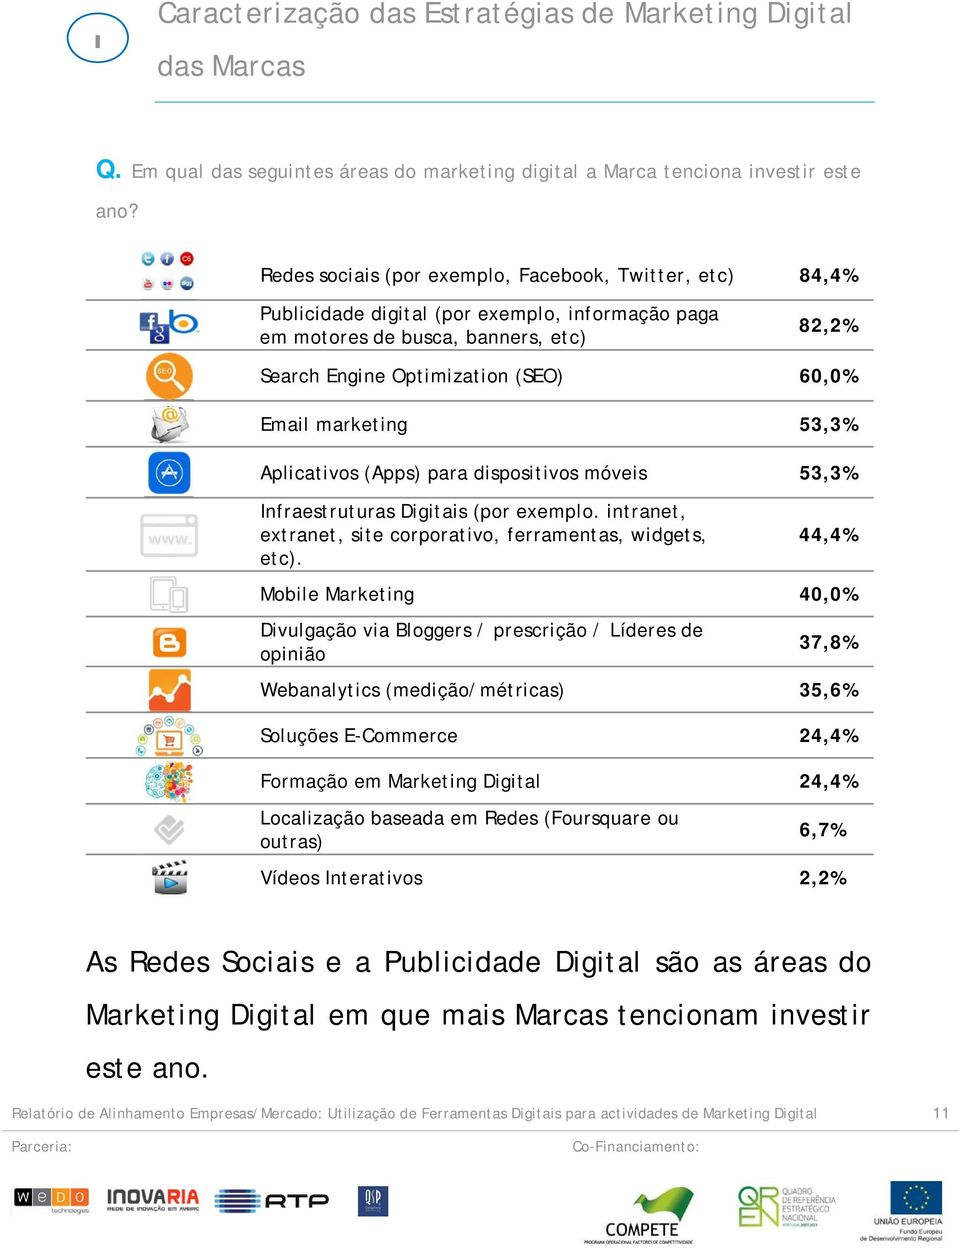 marketing 53,3% Aplicativos (Apps) para dispositivos móveis 53,3% Infraestruturas Digitais (por exemplo. intranet, extranet, site corporativo, ferramentas, widgets, etc).